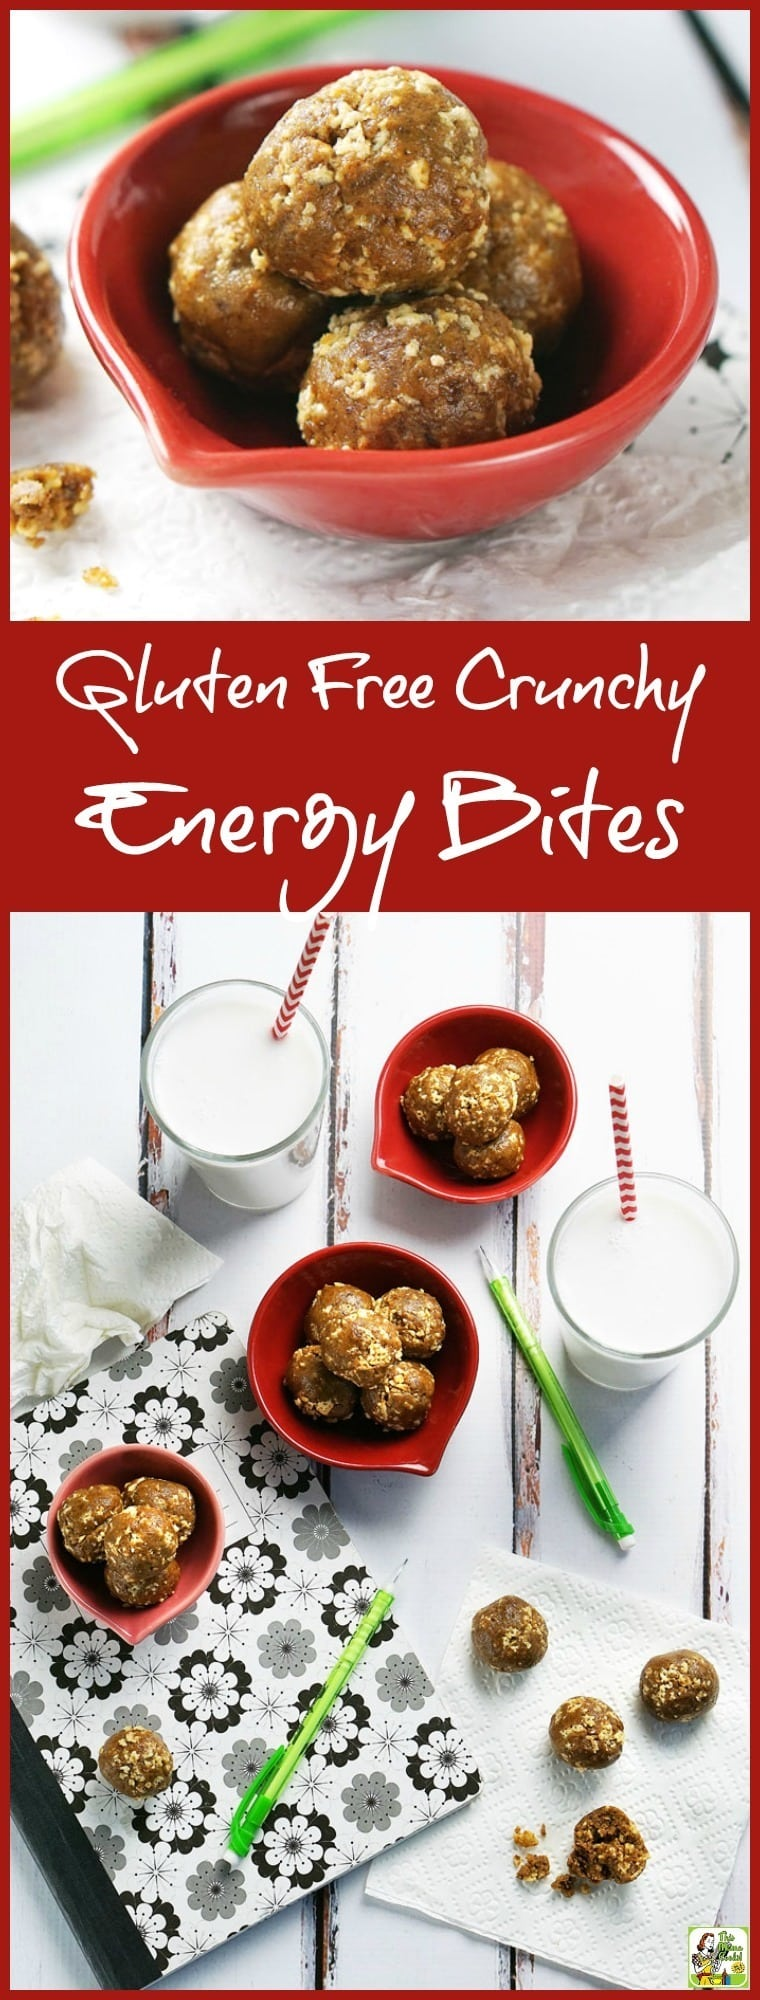 If you\'re looking for an allergy-free snack recipe, try these Gluten Free Crunchy Energy Bites! Kids love them and moms love serving them. They\'re super easy to make, too. Perfect for breakfast on the go, pack them in your lunch back, or take them to after-school activities for a quick, healthy snack. Make up a double batch and freeze so you always have some healthy no-cook energy bites on hand to take to with you when you\'re on the go!